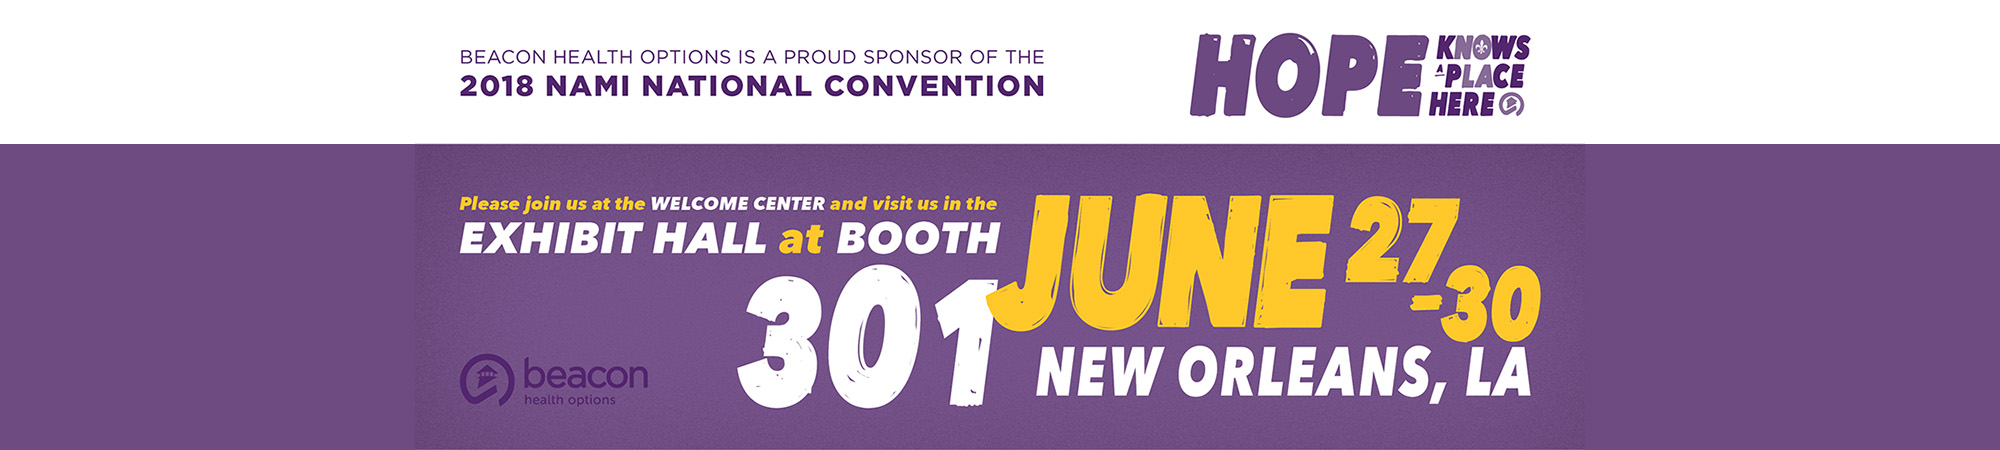 2018 NAMI National Convention in New Orleans, June 27-30. Click for more info.